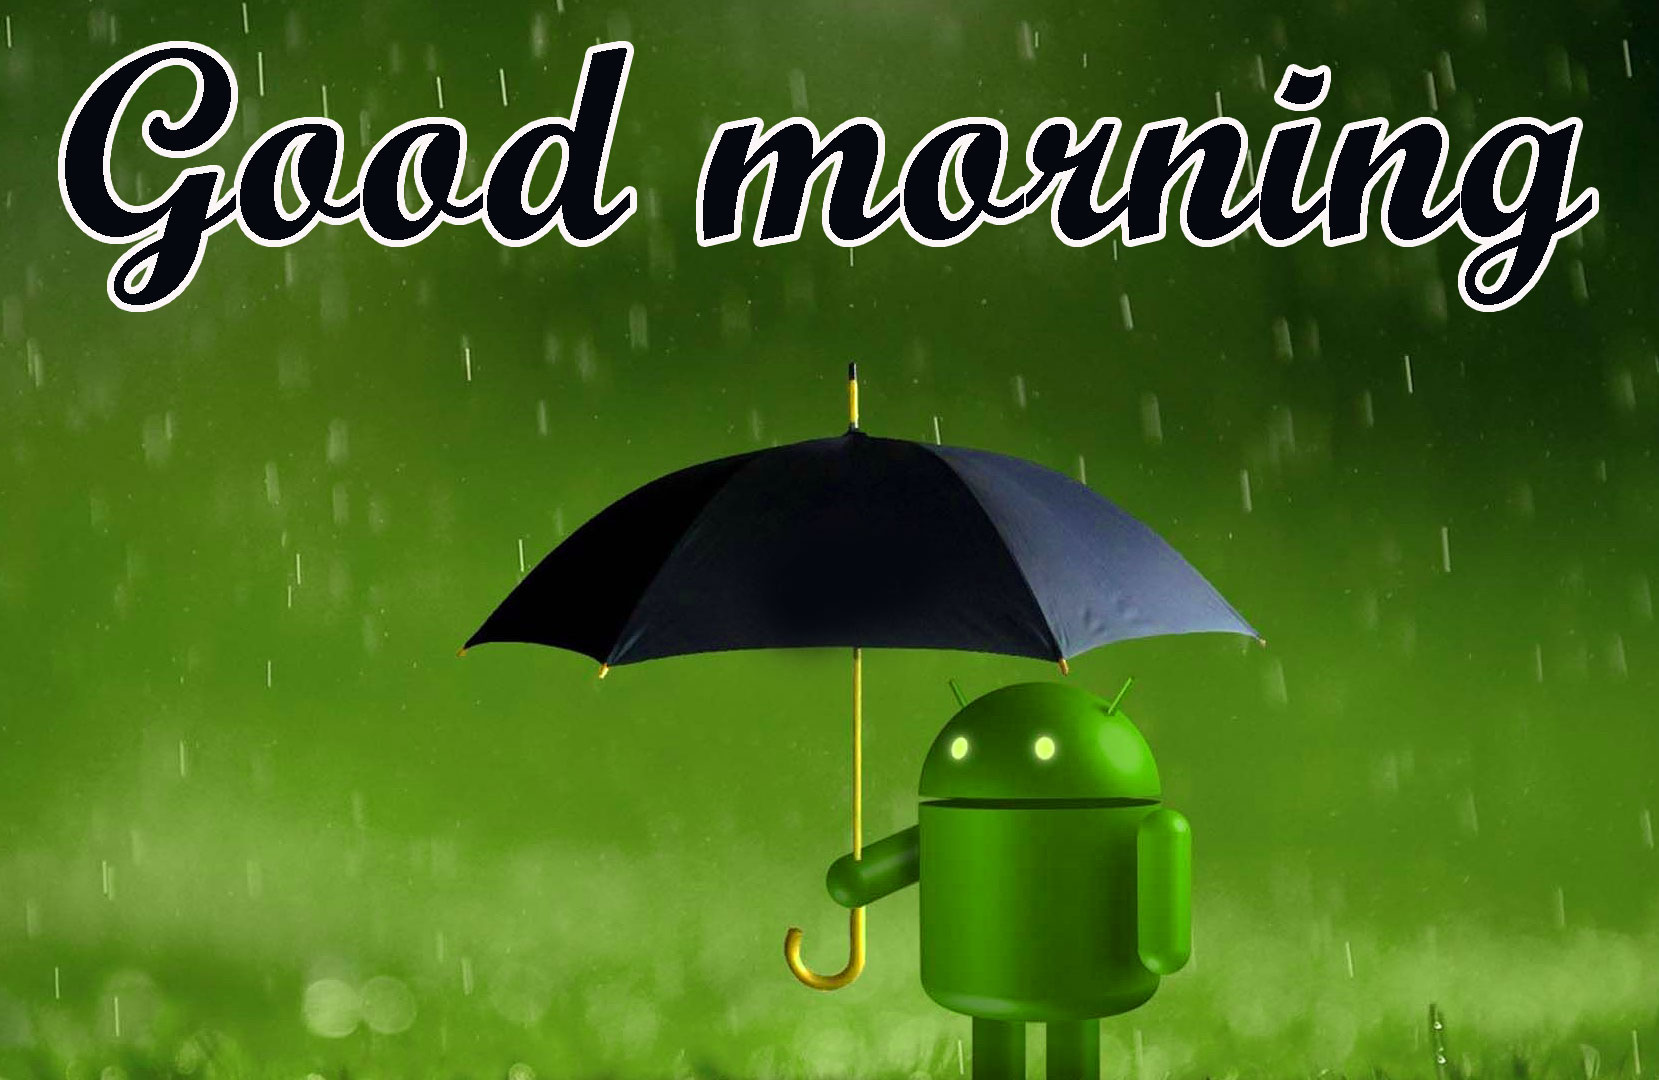 BEAUTIFUL 3D GOOD MORNING IMAGES  PICS WALLPAPER FOR MOBILE USER